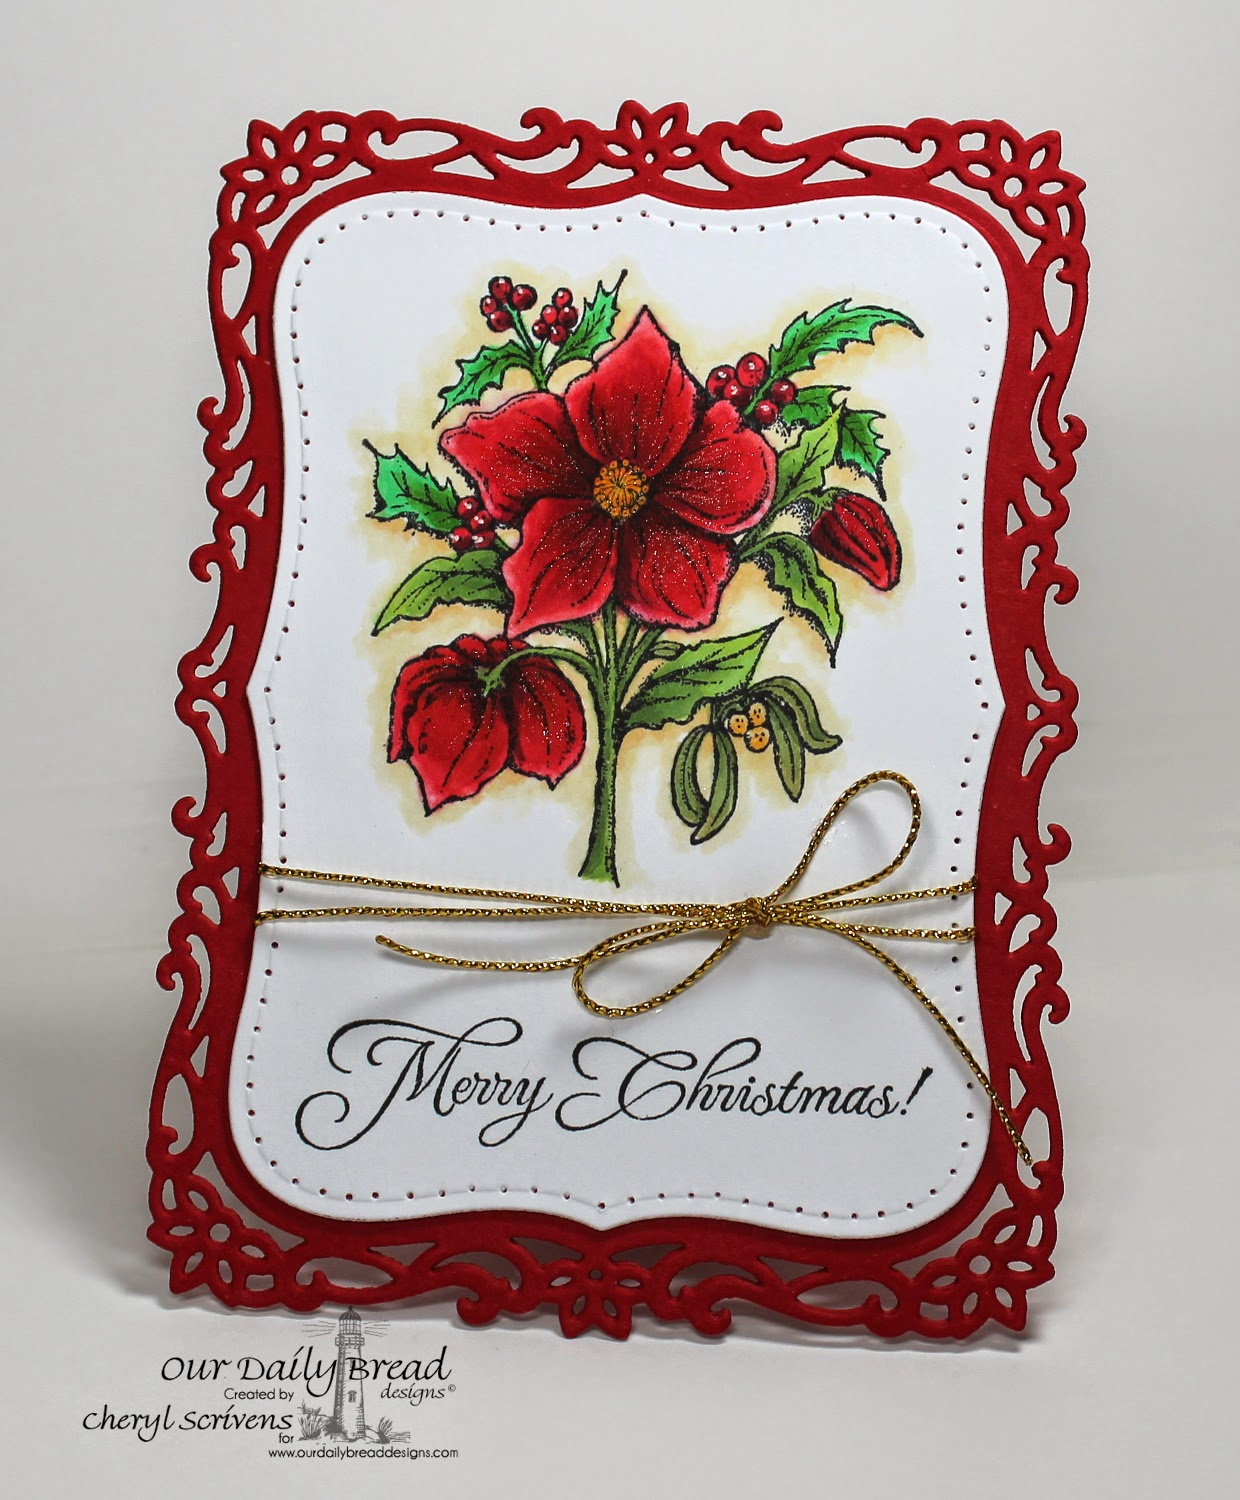 Our Daily Bread Designs, ODBDSLC217, Christmas Rose, Gift of God, CherylQuilts, Designed by Cheryl Scrivens